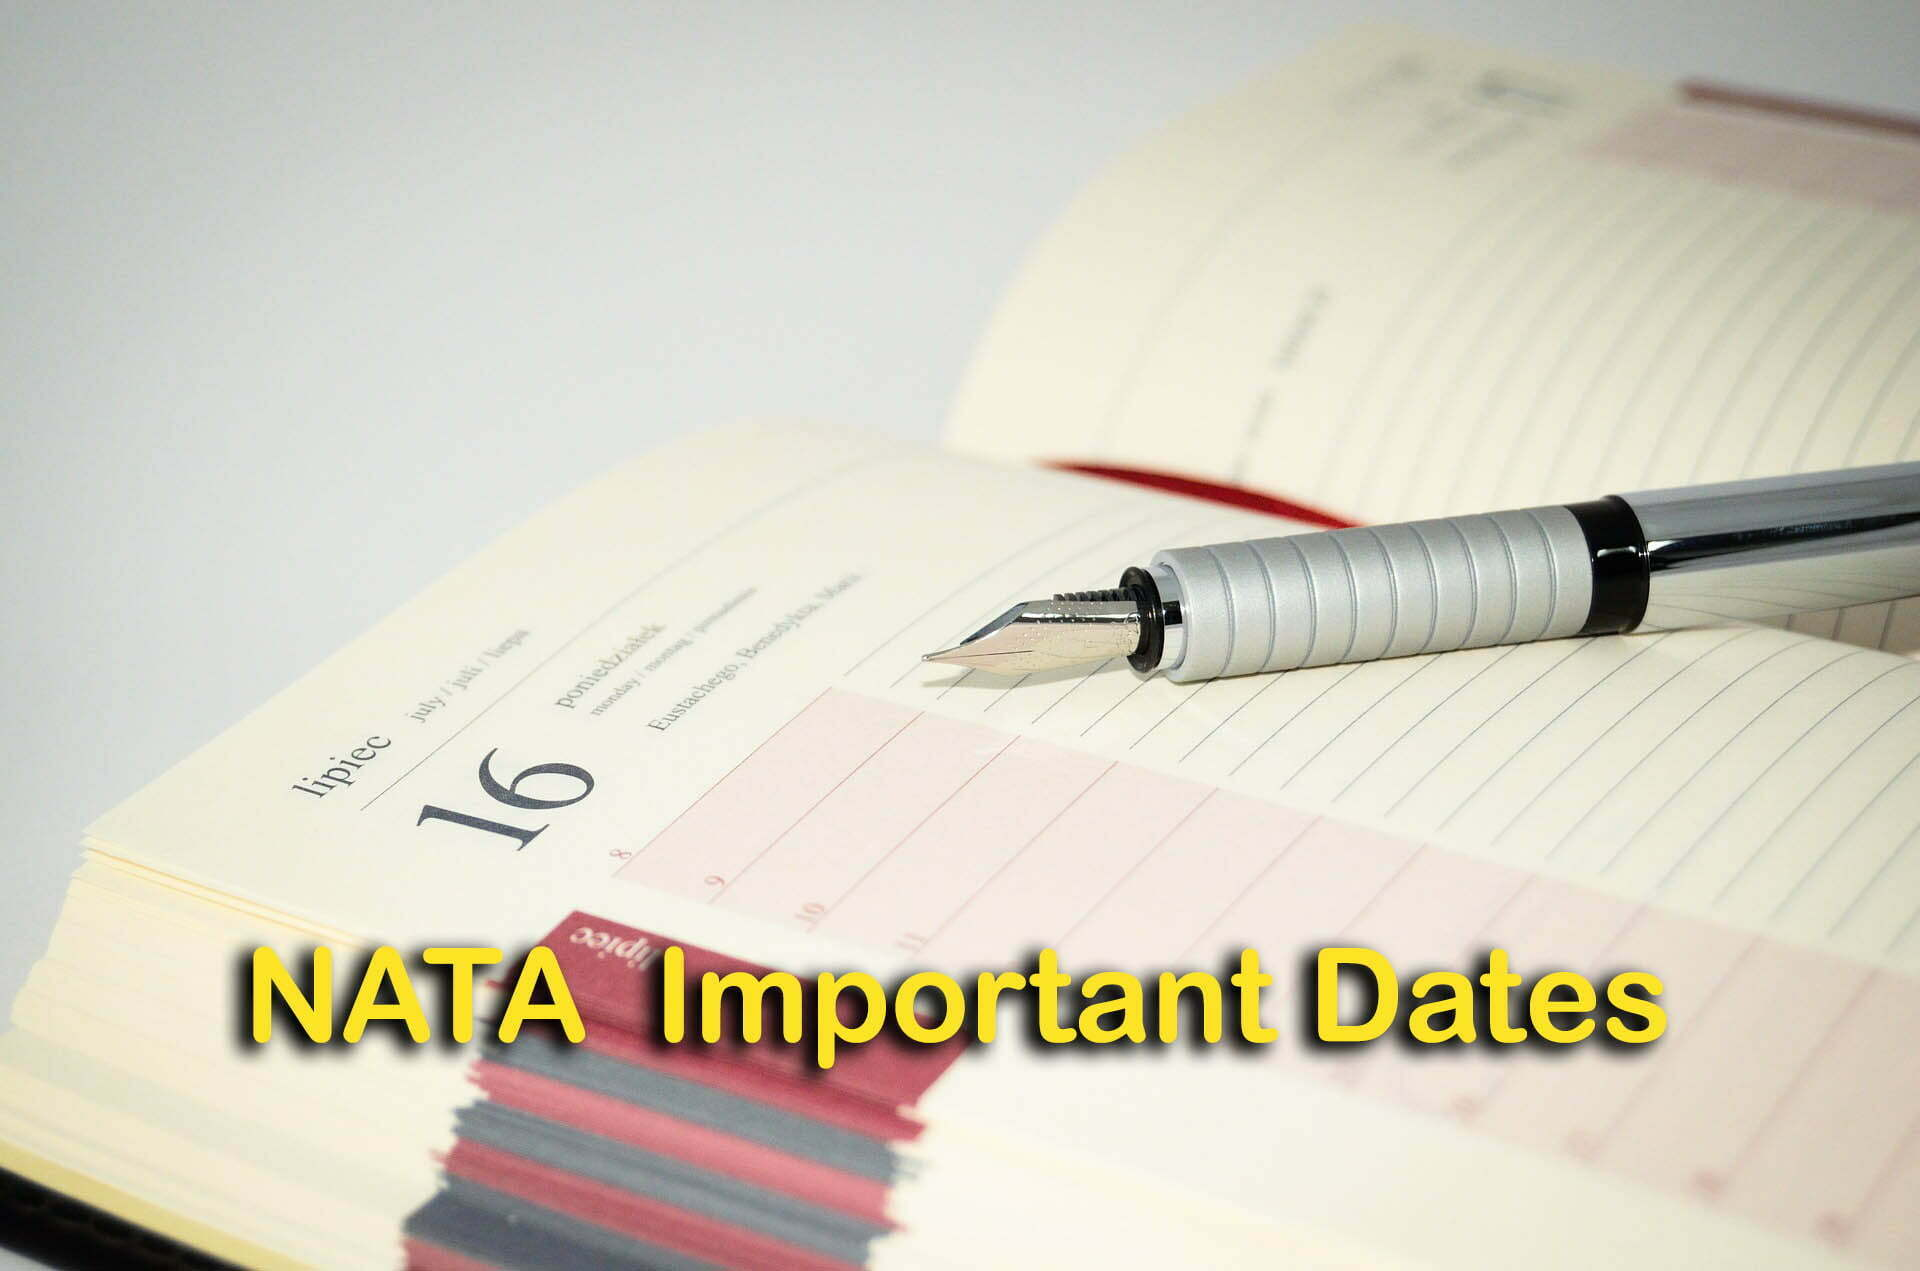 NATA Important Dates